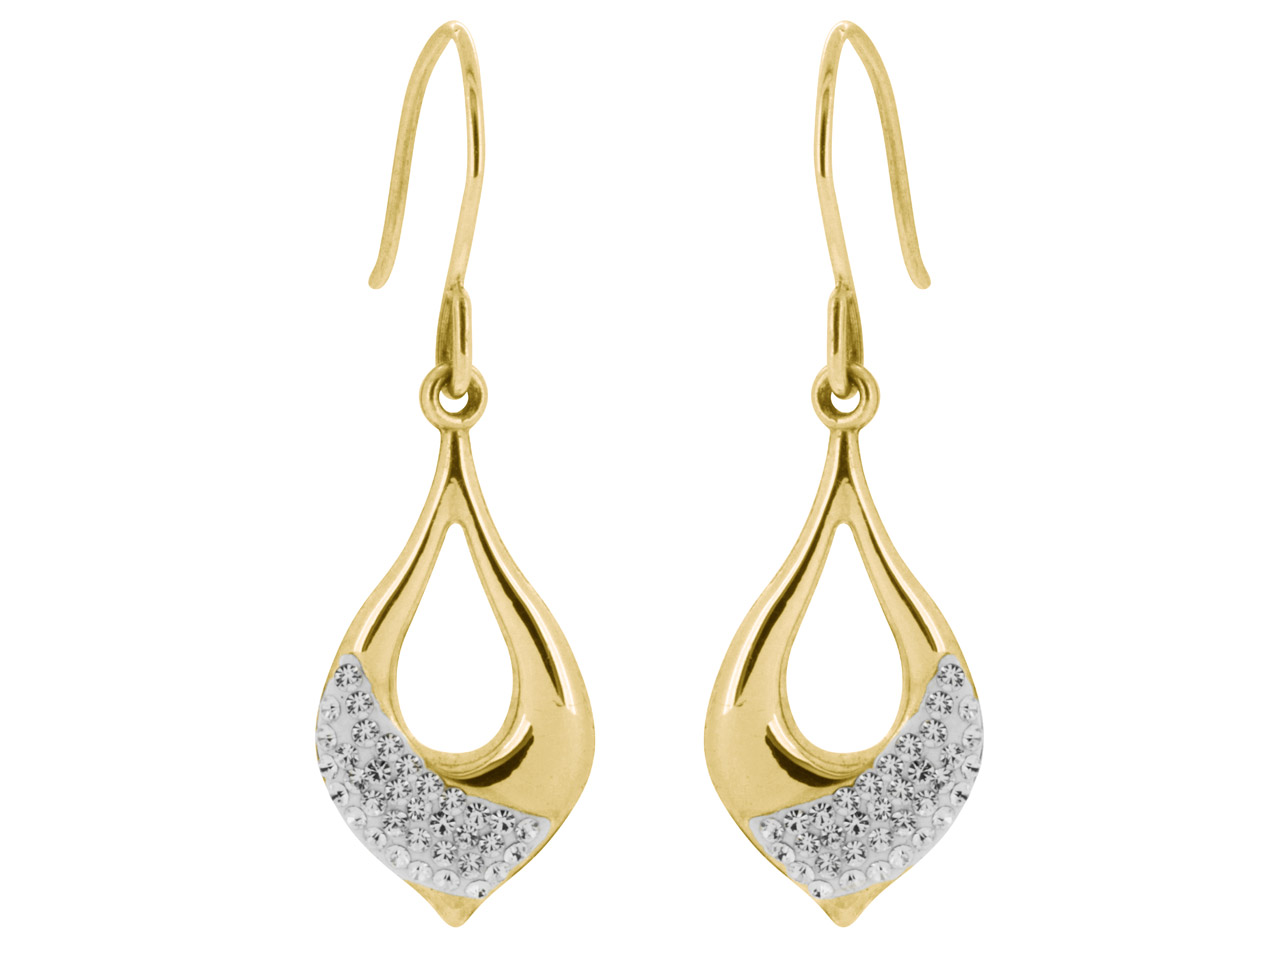 9ct Yellow Crystal Drop Earrings    Embossed With 70 White 1mm Crystals